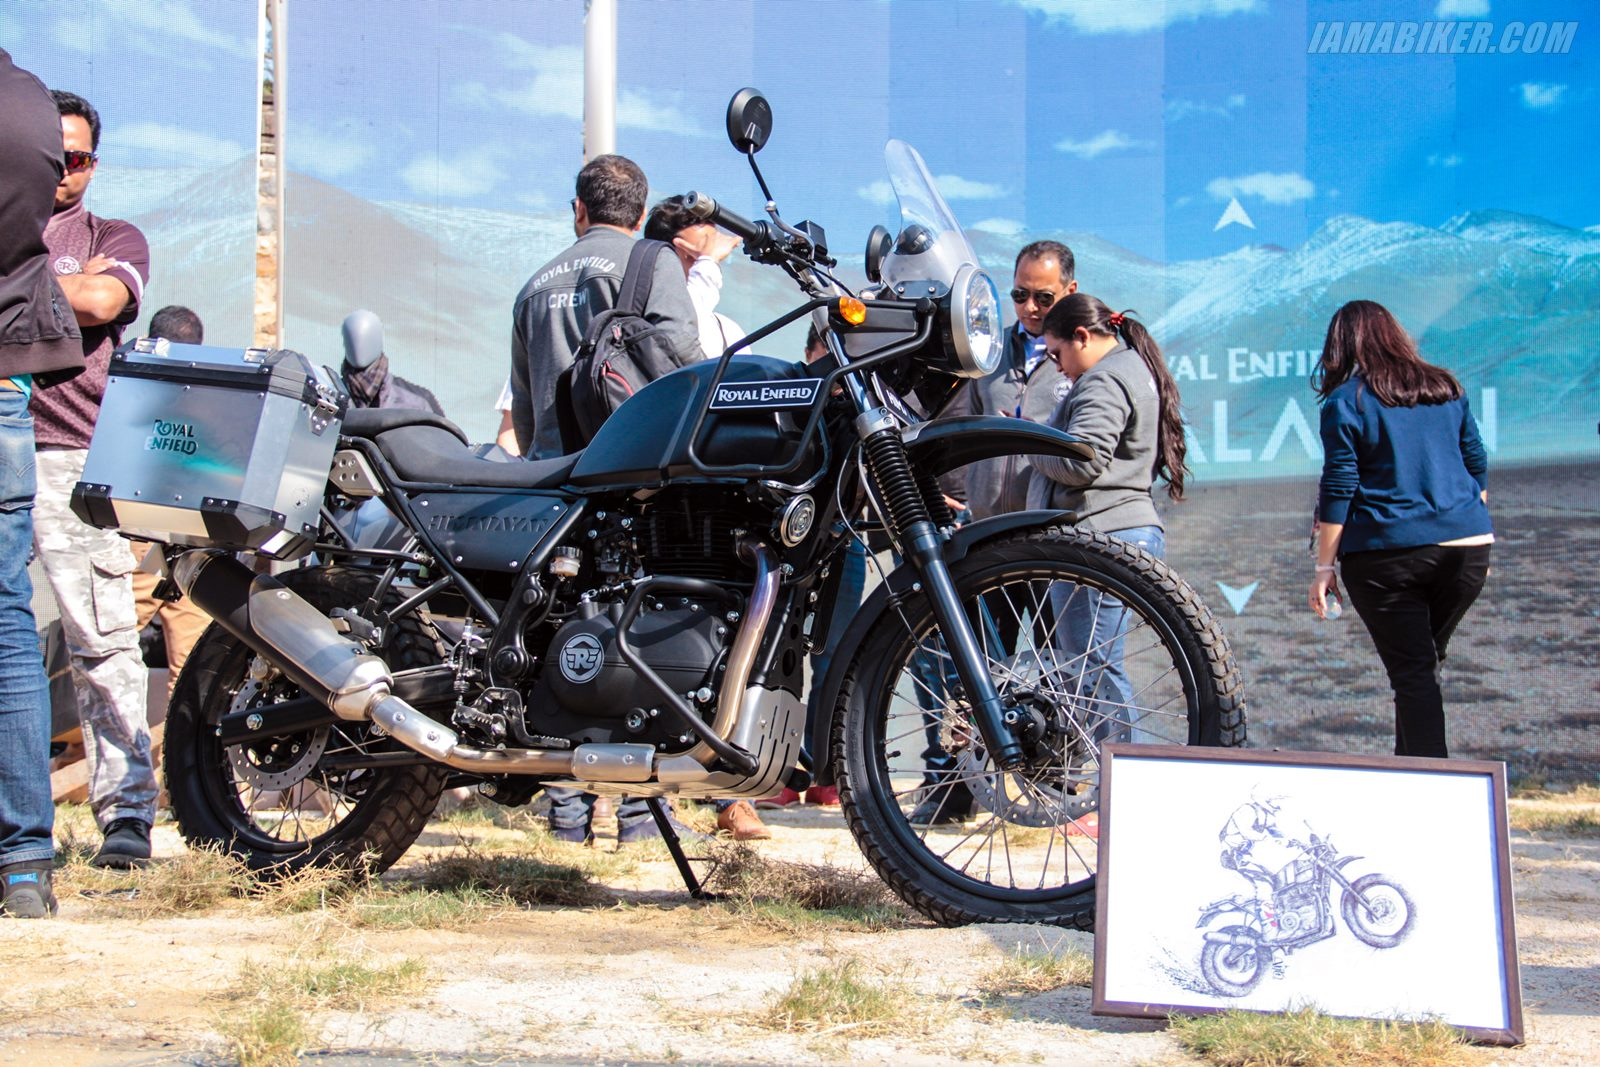 Royal Enfield Himalayan unveiled